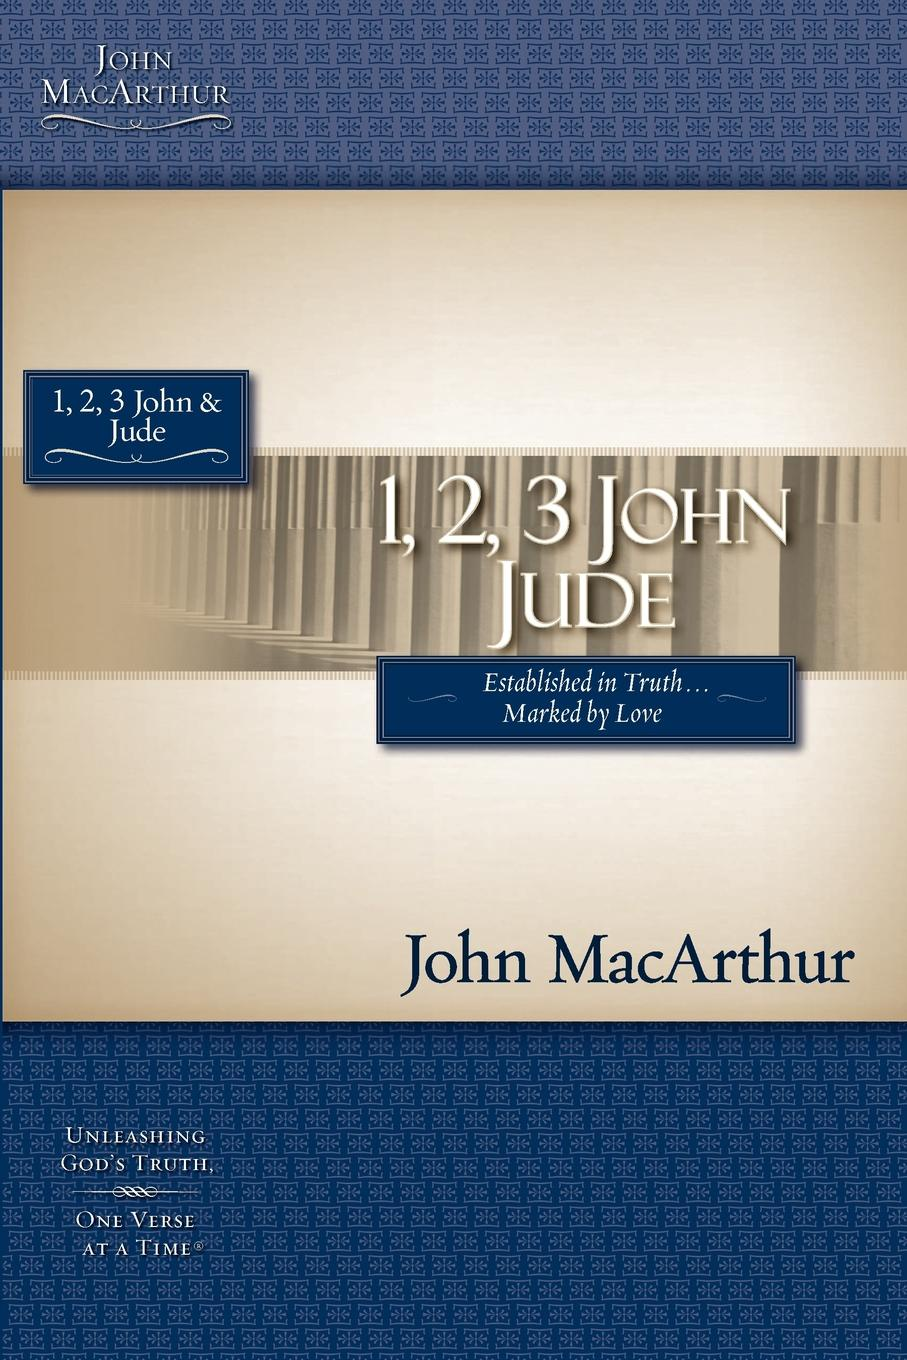 John MacArthur 1, 2, 3, John & Jude. Established in Truth, Marked by Love